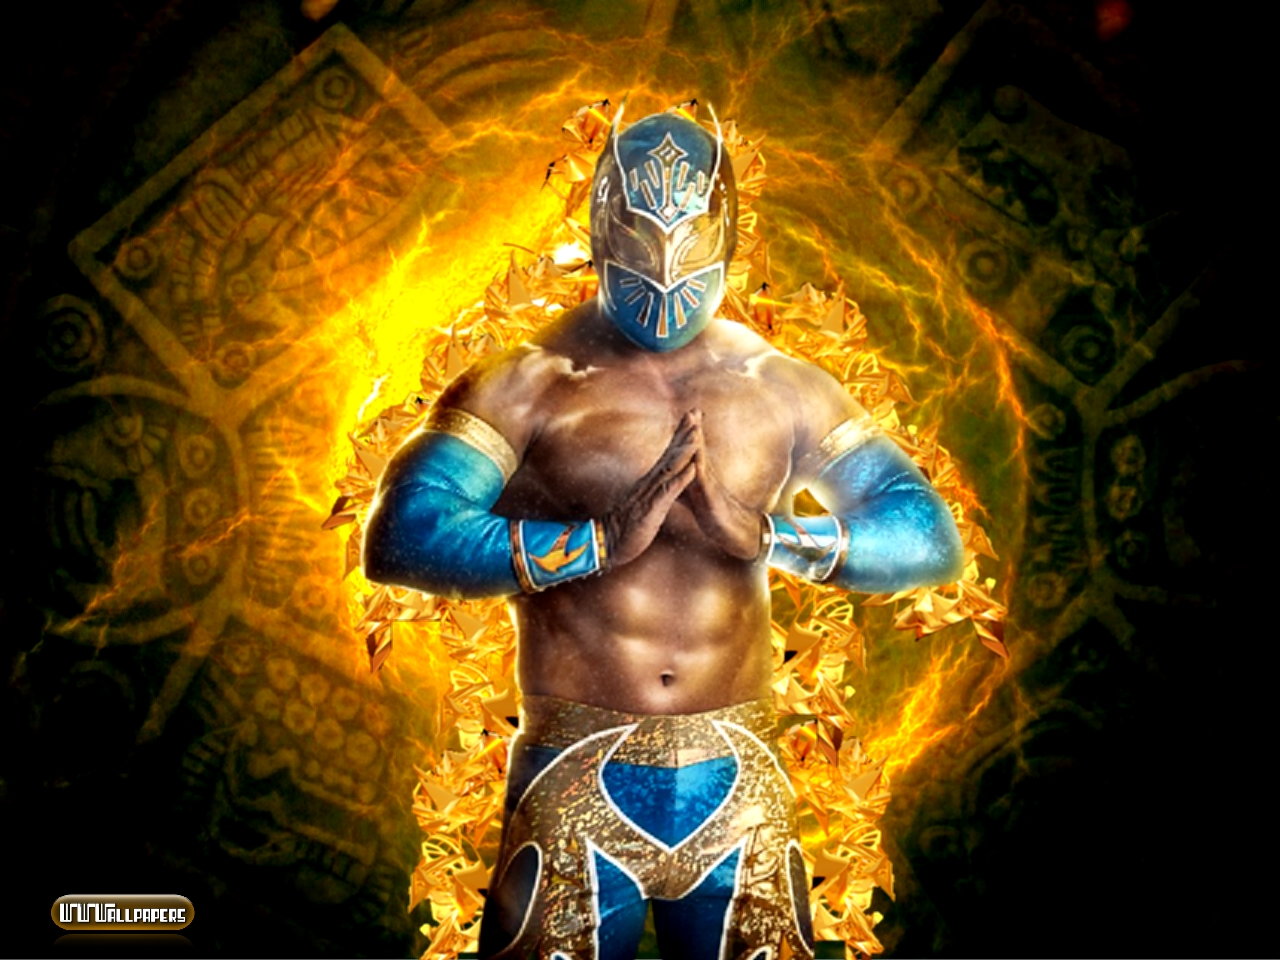 2bpblogspot ZD5G9fxHXTs T WWE HD Wallpapers Sin Cara 2012